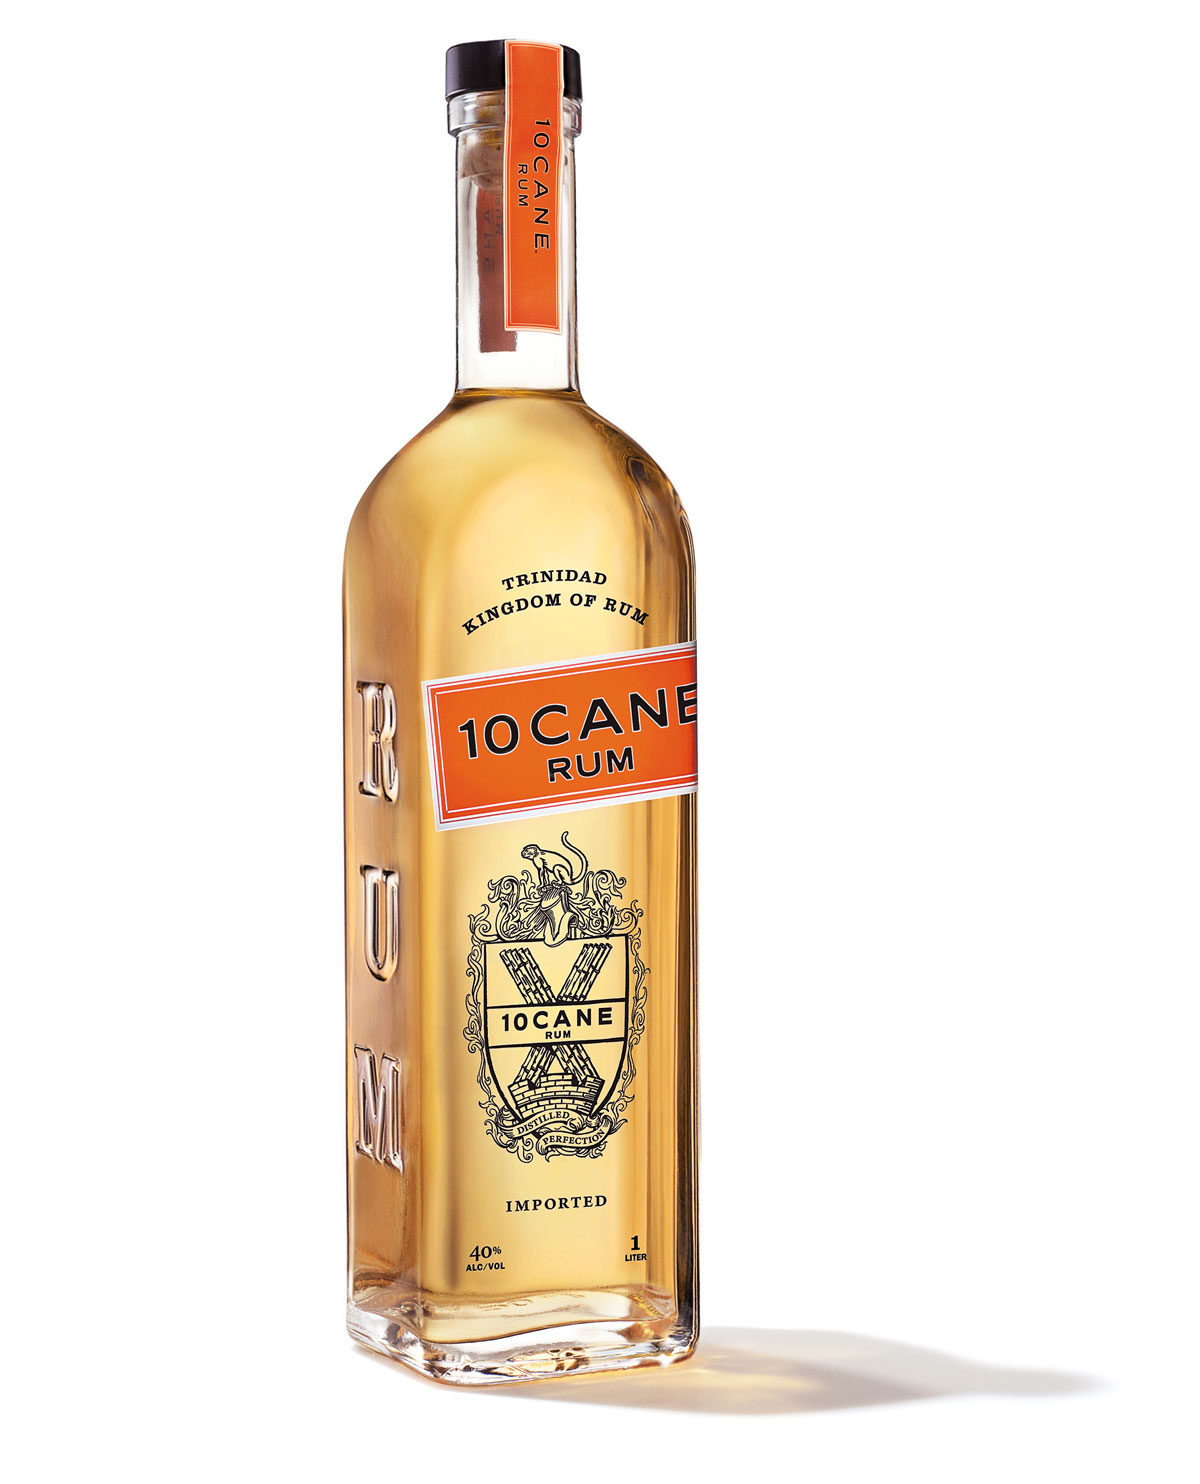 10 Cane Premium Rum Packaging Design by Benard Creative Including Bottle Design, Branding Collateral, and Brand Positioning